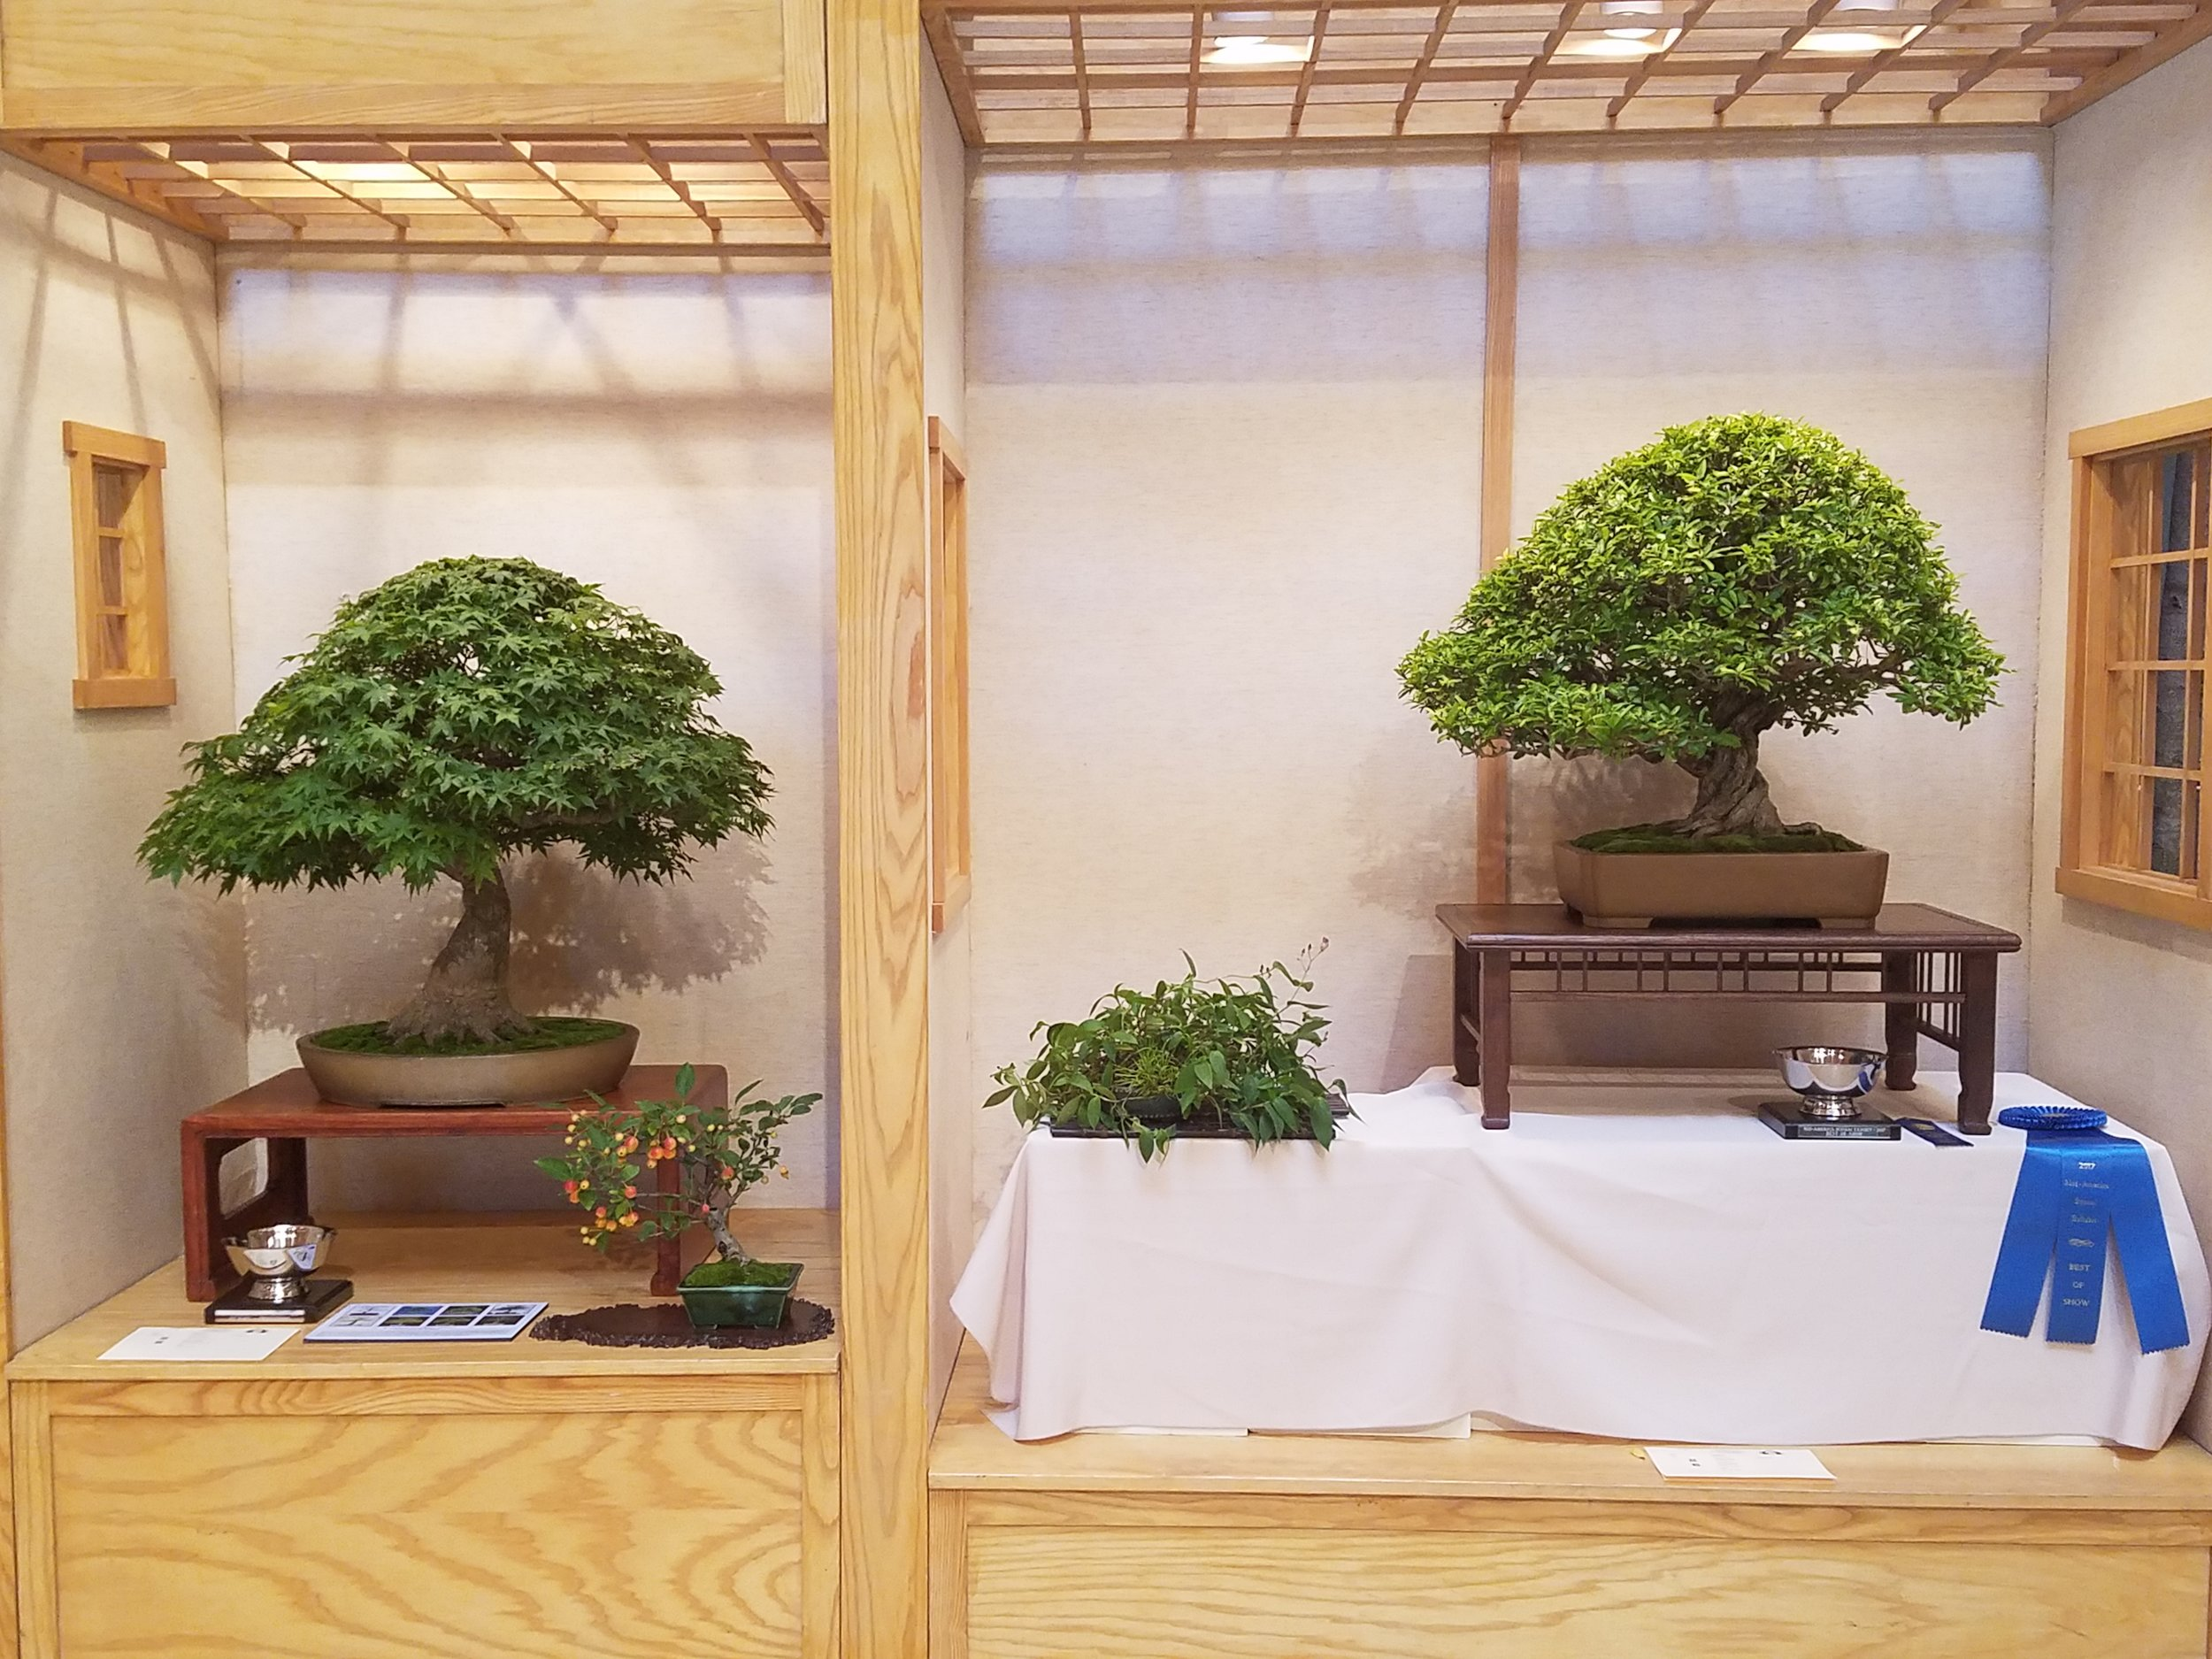 2017 Mid-America Bonsai Exhibition - First Place Professional and Best of Show Trees in Tokonoma